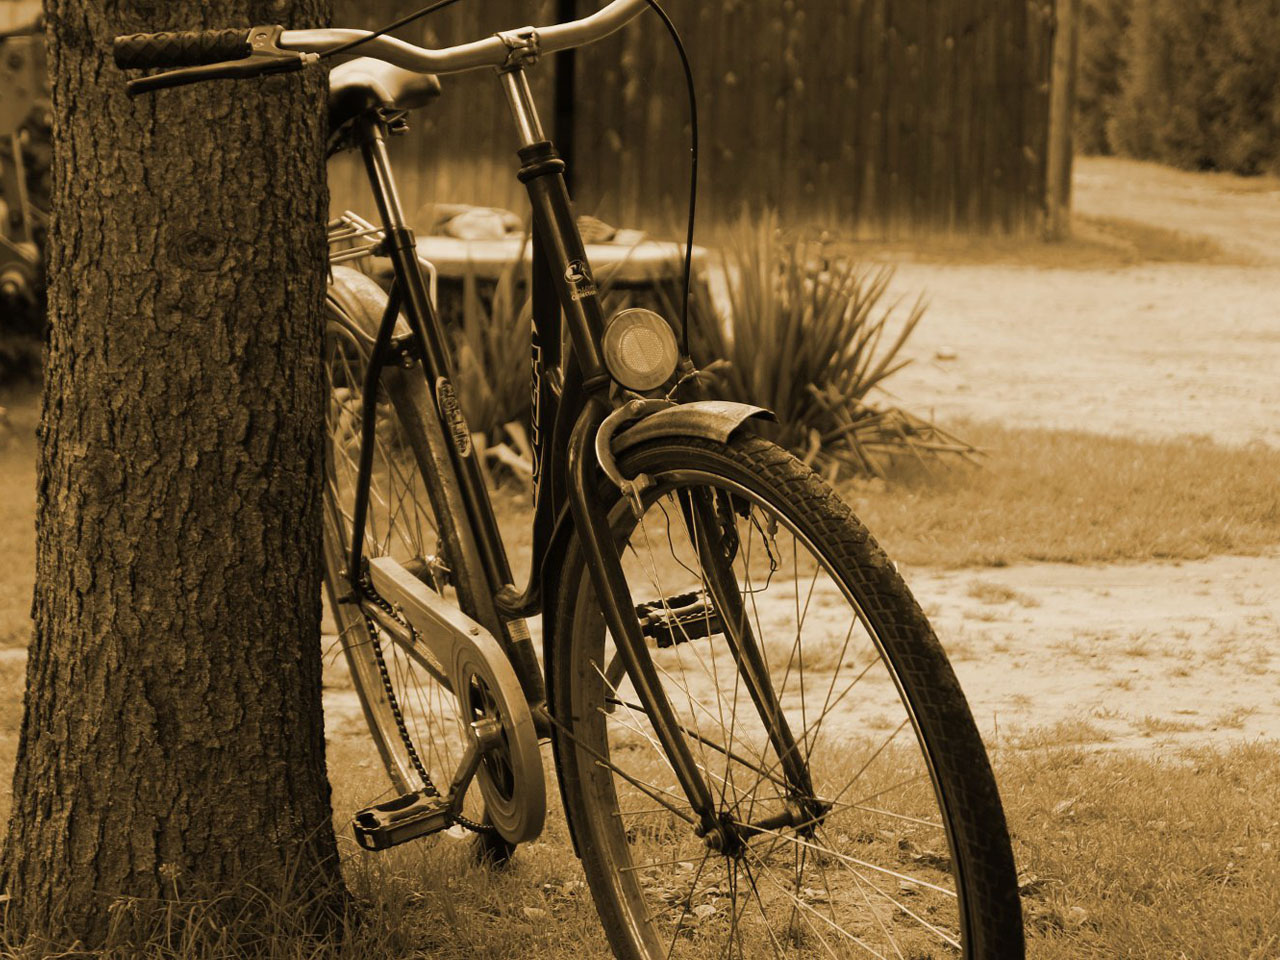 A nostalgic bike photography wallpaper Auto desktop background